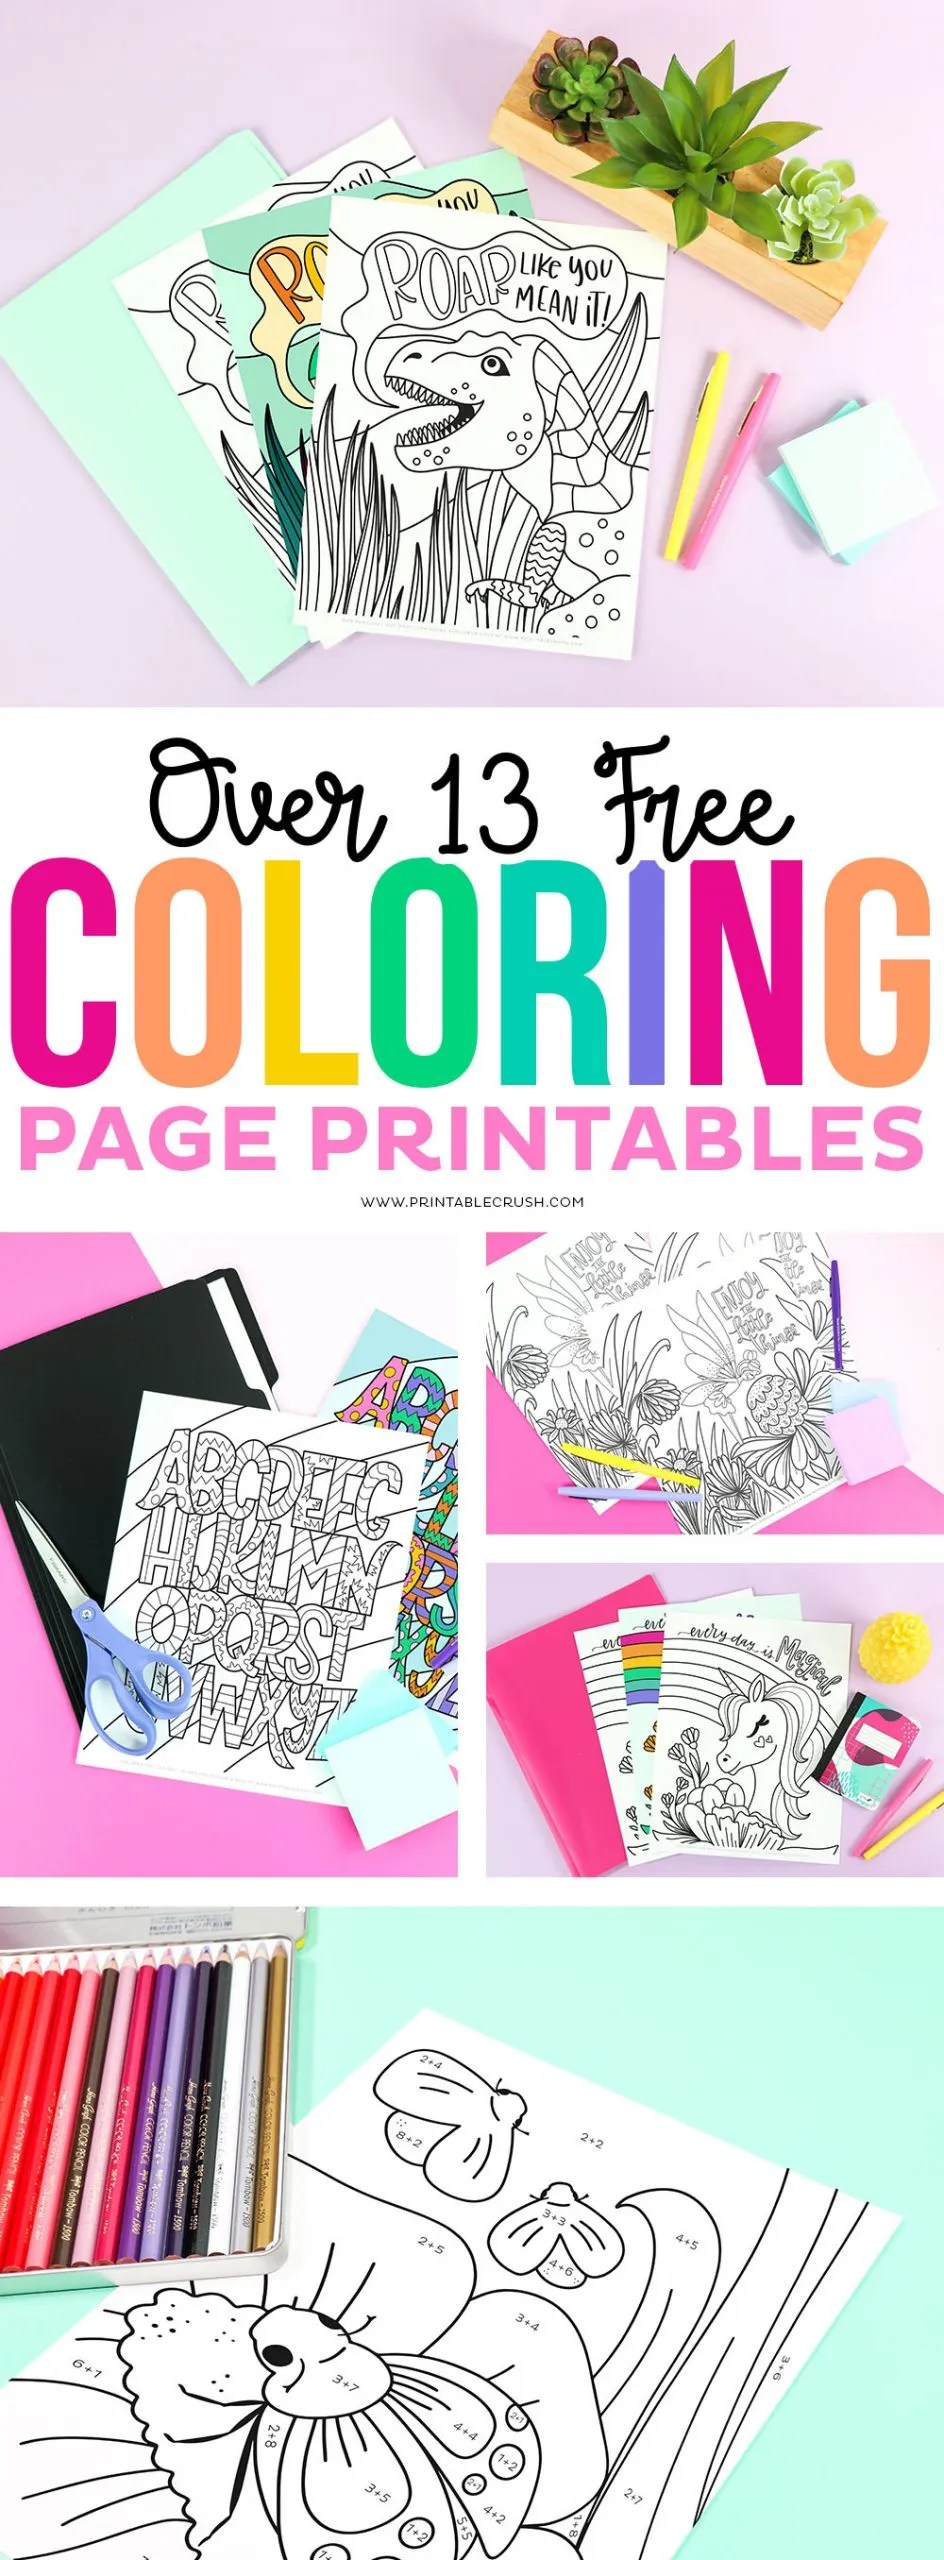 Over 13 FREE Printable Coloring Pages - Free Coloring Pages - Free Hand Drawn Coloring Pages - Printable Crush via @printablecrush